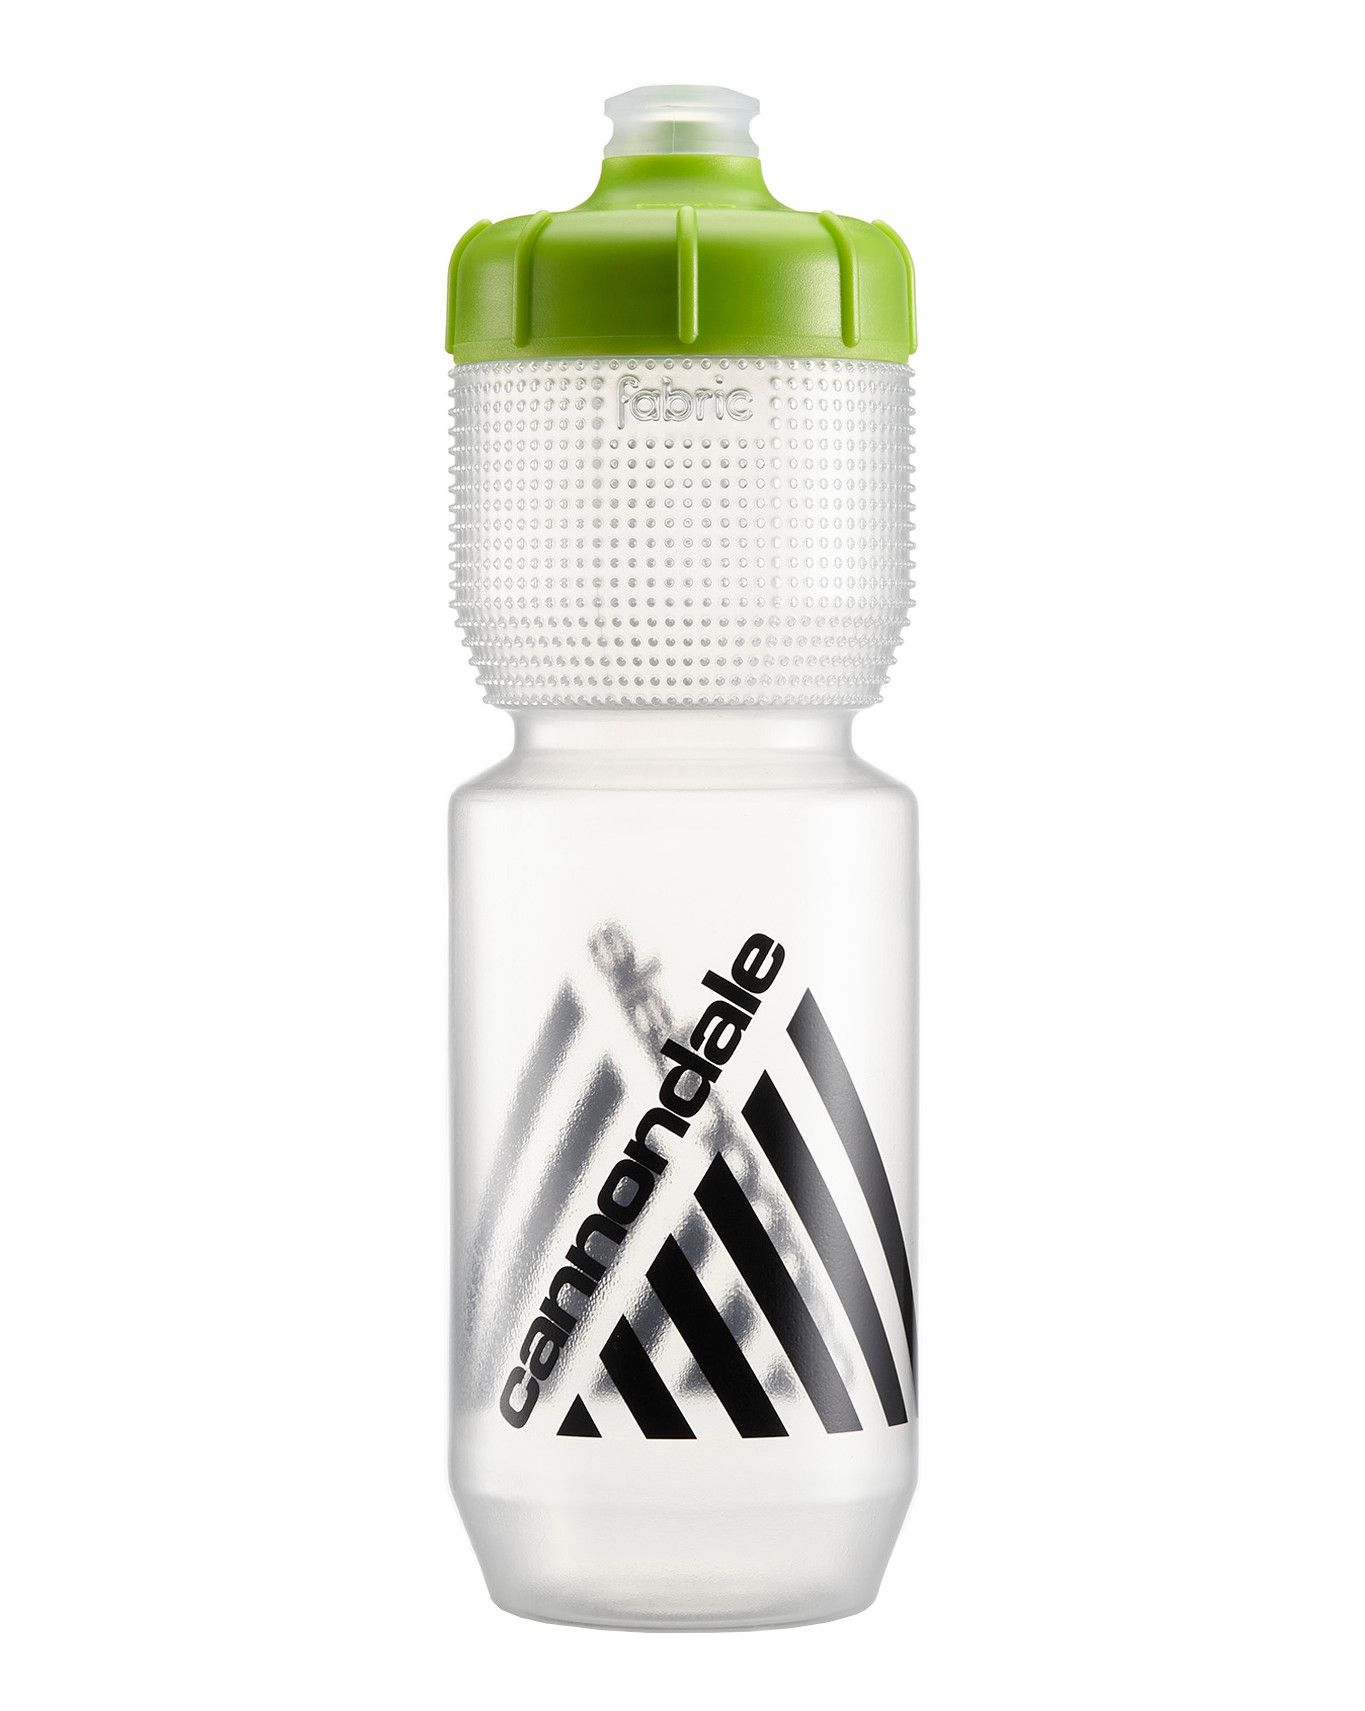 Bidon Fabric Cannondale Retro Graphic 750 ml Transparent/Vert